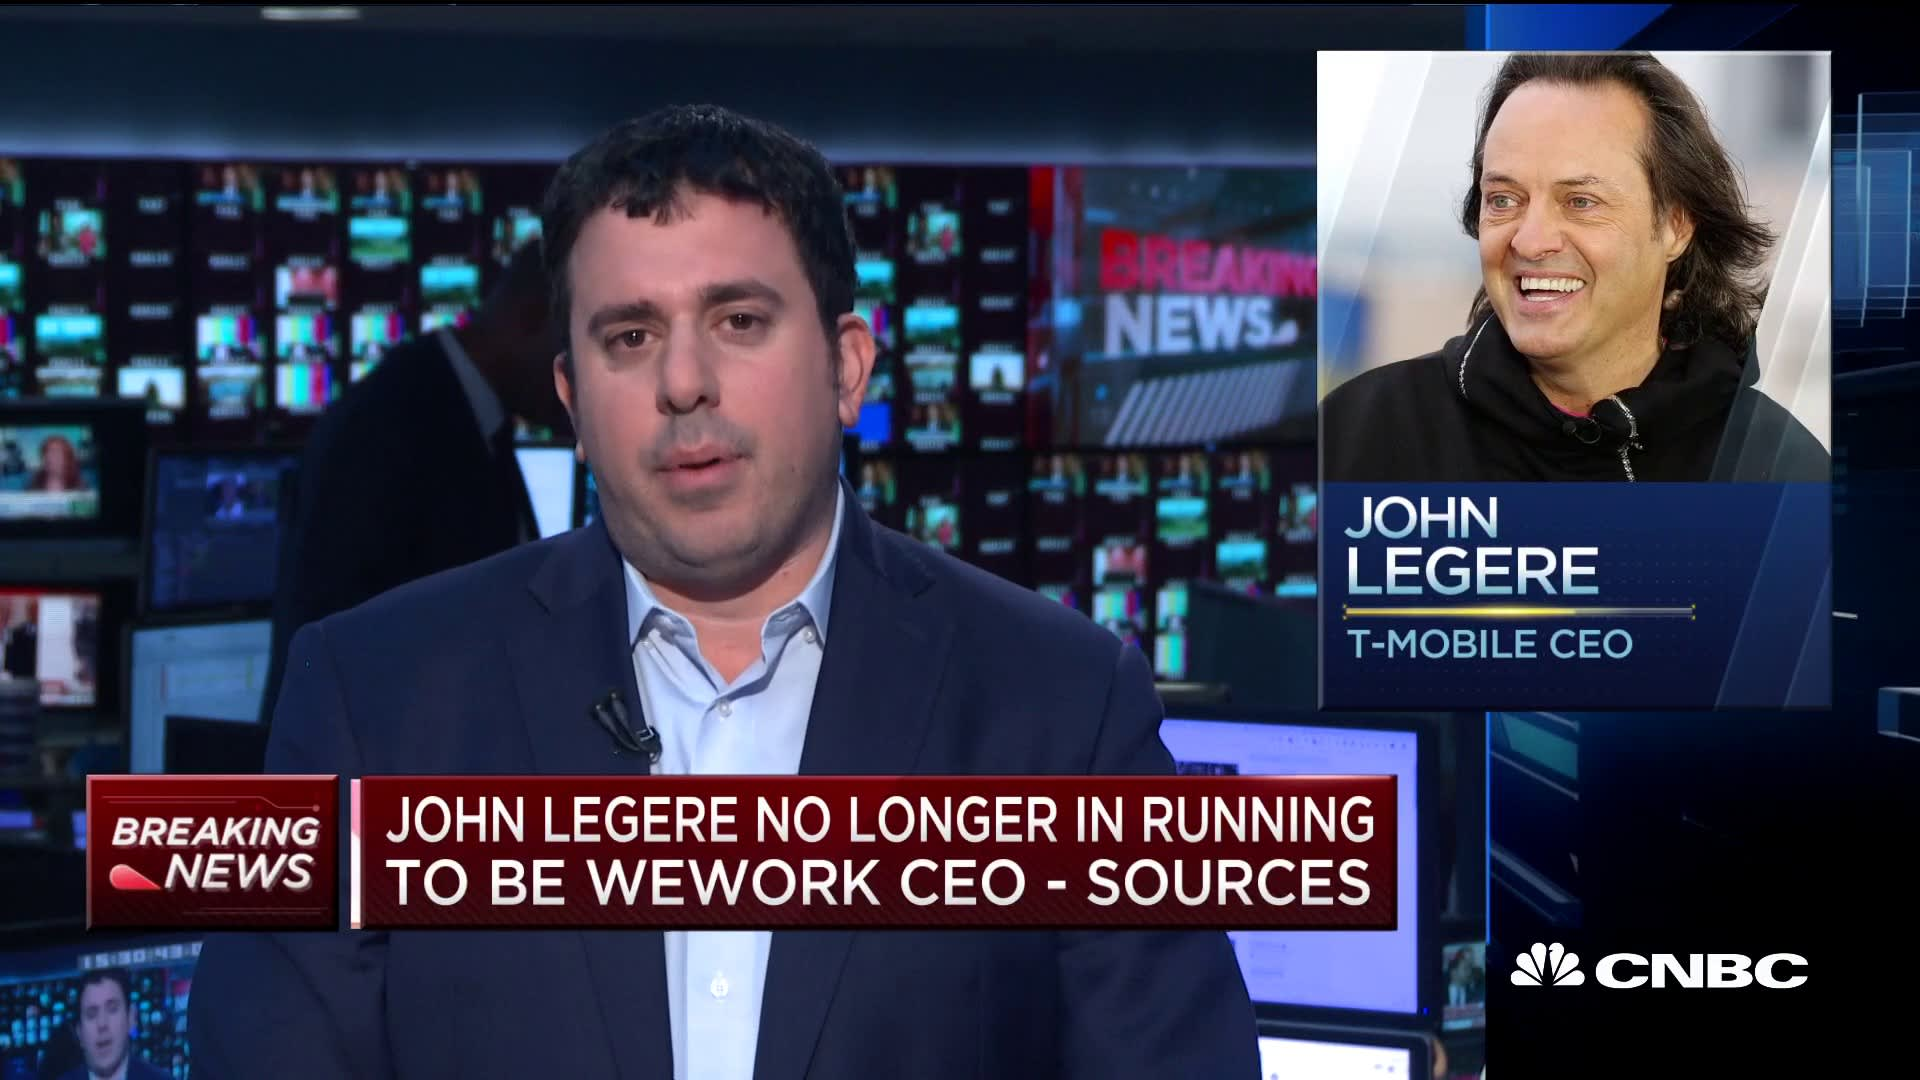 John Legere no longer in running to be WeWork CEO, sources tell CNBC